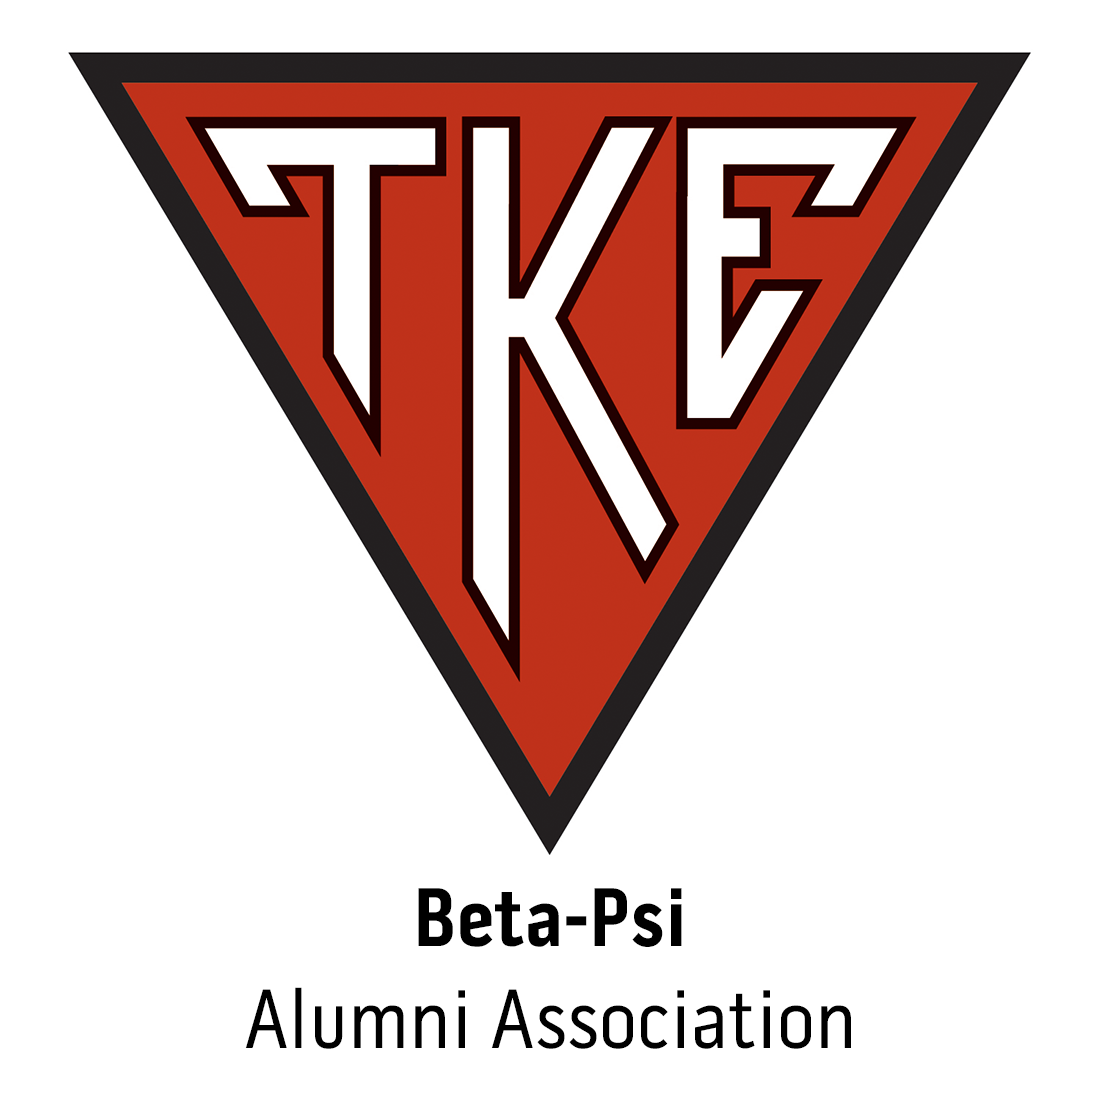 Beta-Psi Alumni Association at Arkansas State University